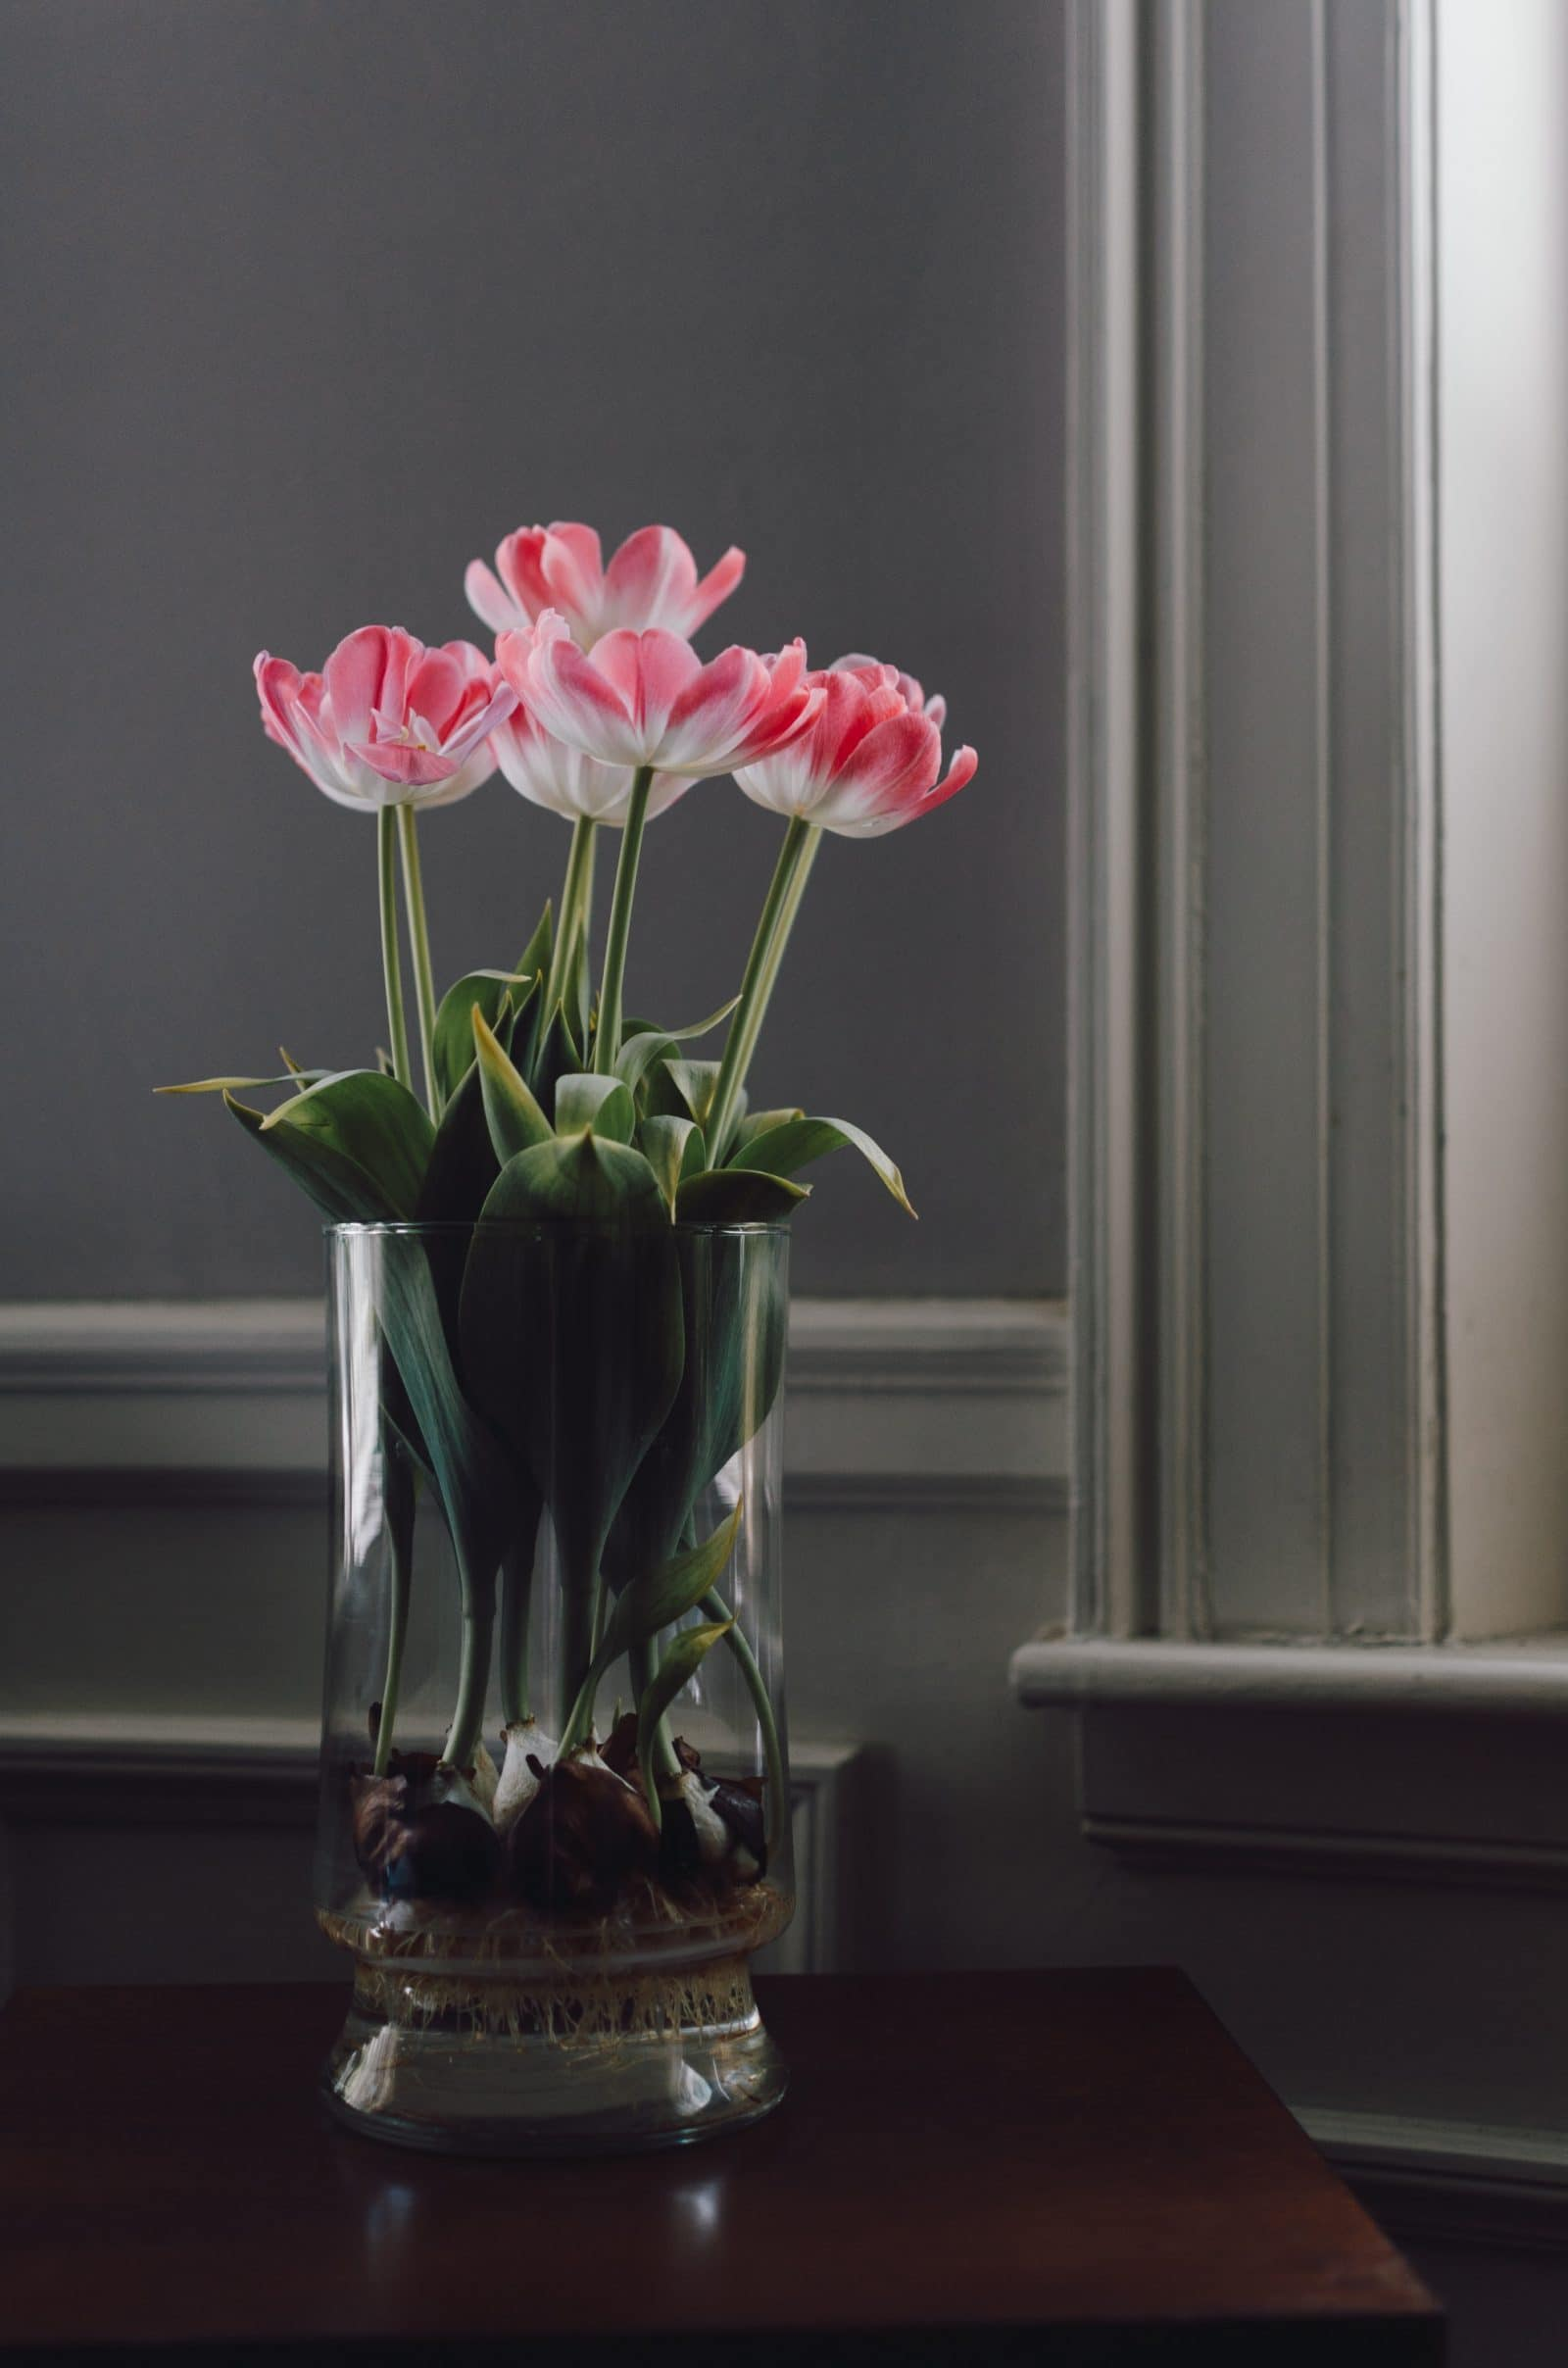 beautiful indoor flower growing on vase